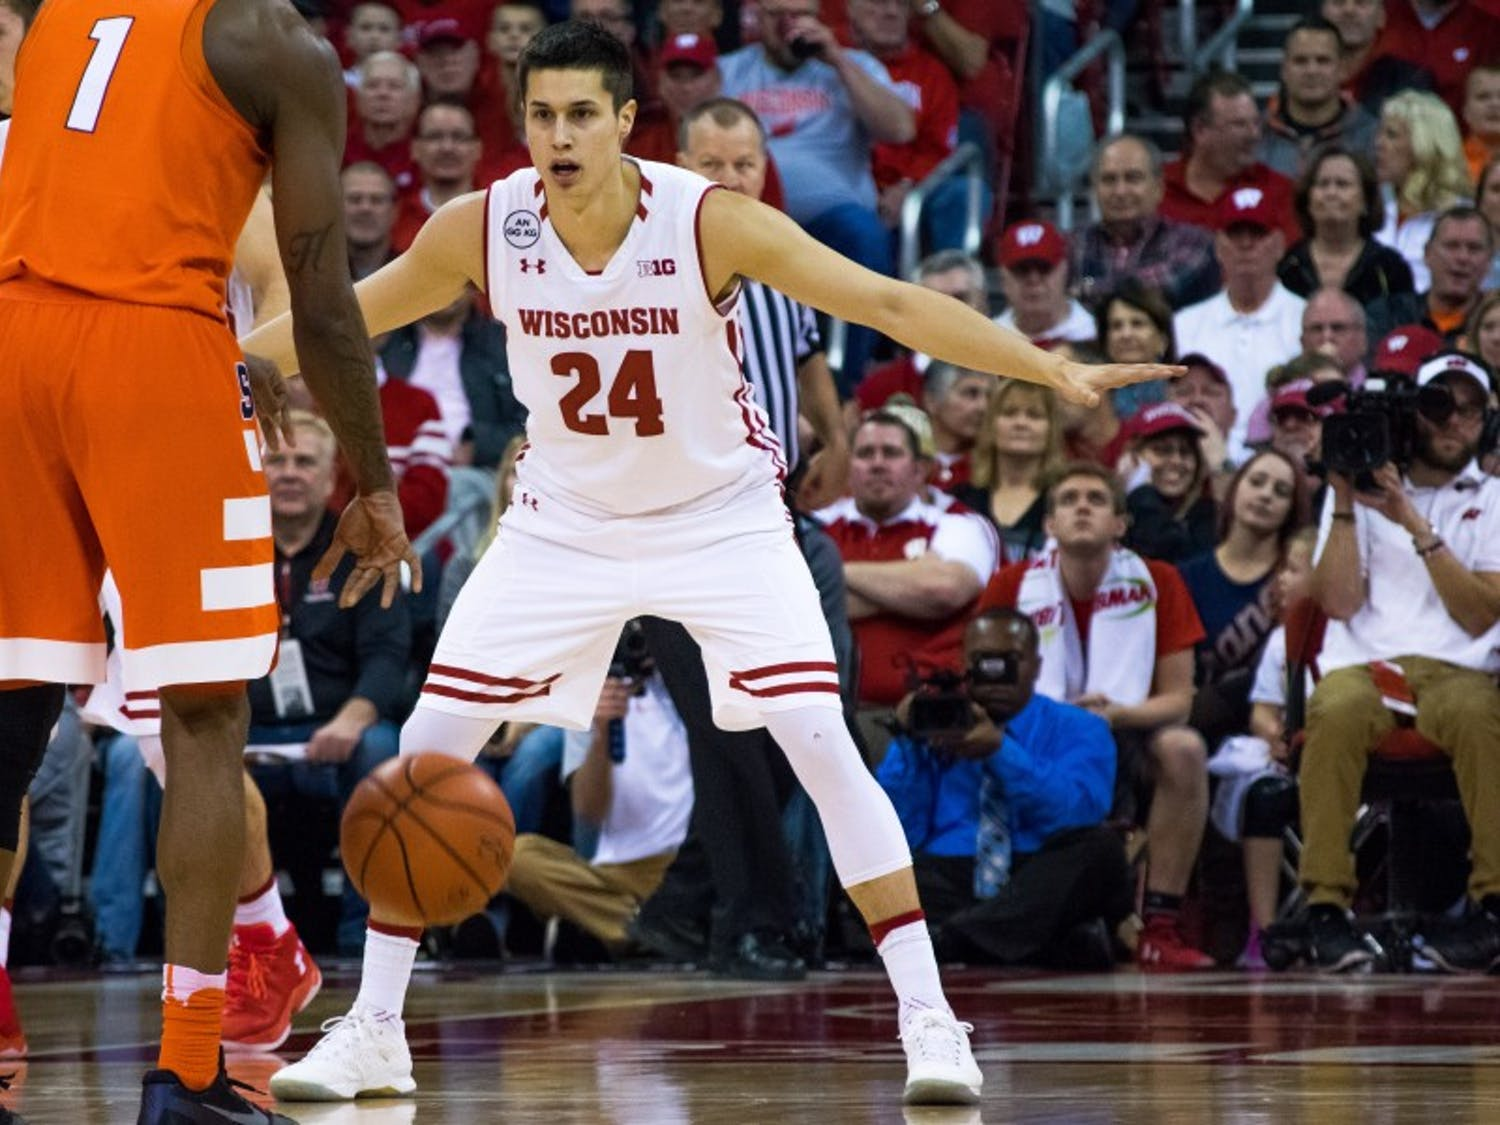 Koenig scored nine points in his return and keyed a Badger run in the second half.